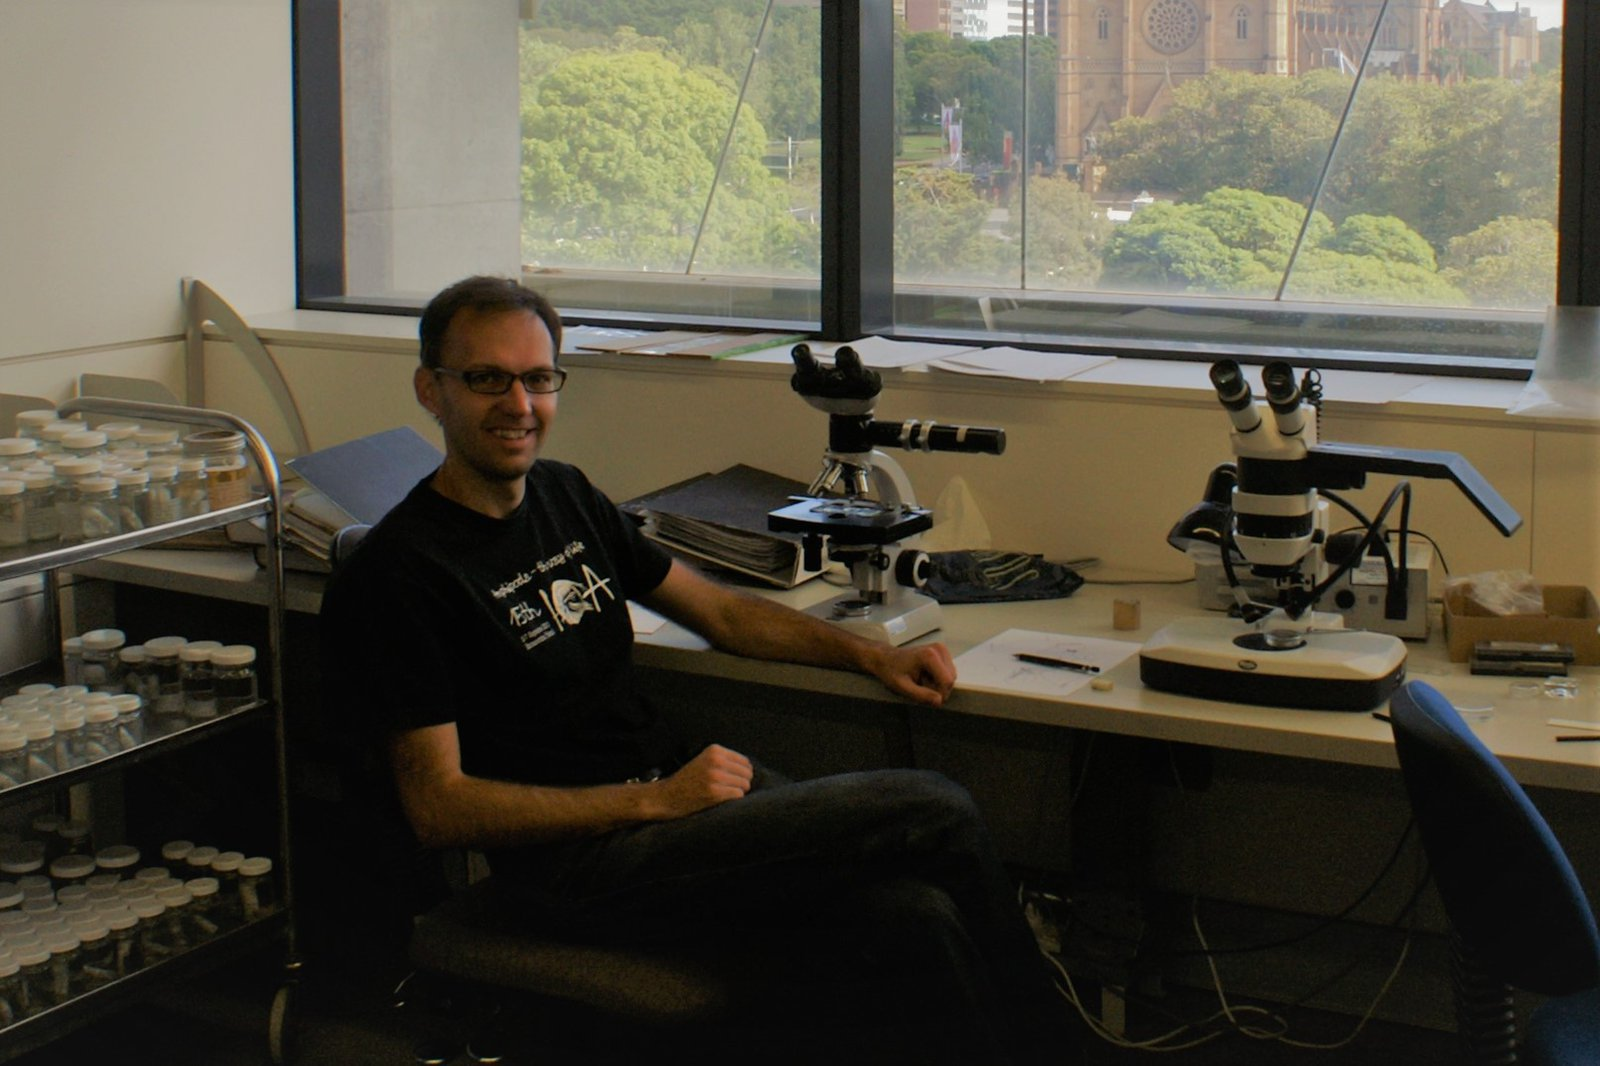 Mikhail Daneliya during his visit to the Australian Museum Research Institute in 2015